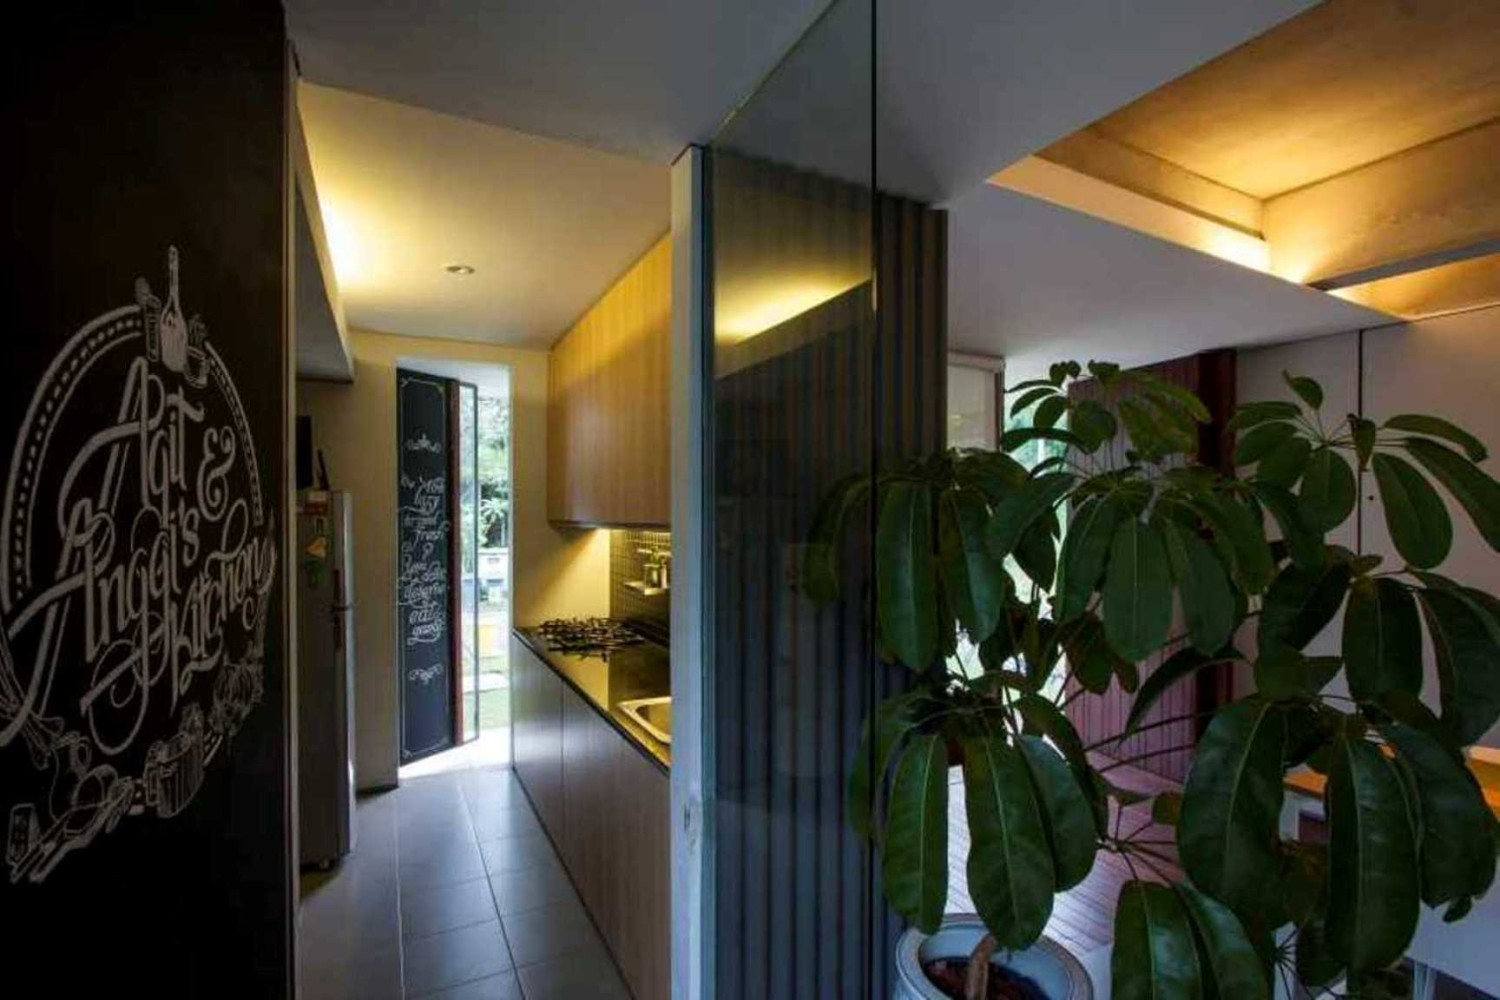 lighting pictures. Desain Lighting Tersembunyi Pada Trimmed Reform House Karya Sub Architect [Sumber: Arsitag.com Pictures